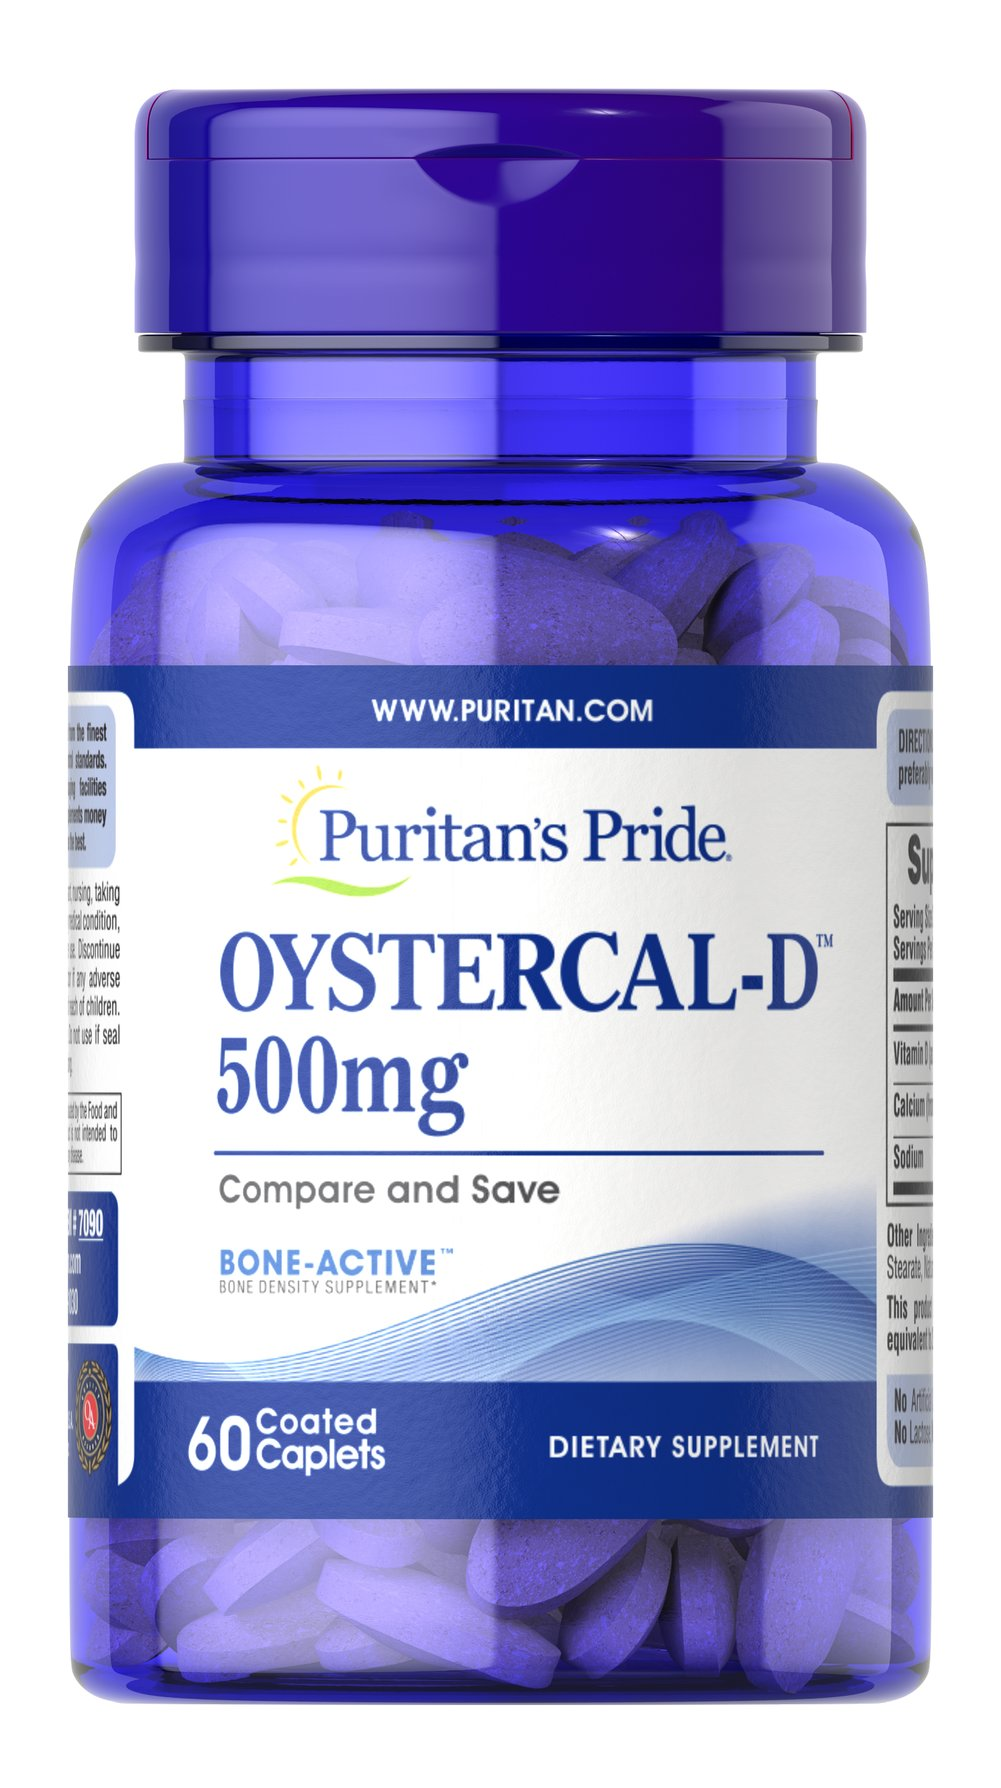 Oystercal-D™ 500 mg <p>It's time to bone-up on bone health! Our Oyster-Cal formula is a good choice for helping your maintain bone health.** It's sourced from oyster shells and delivers 1,000 mg of Calcium per serving, with the added value of Vitamin D to assist with absorption.**</p> 60 Caplets 500 mg $4.49